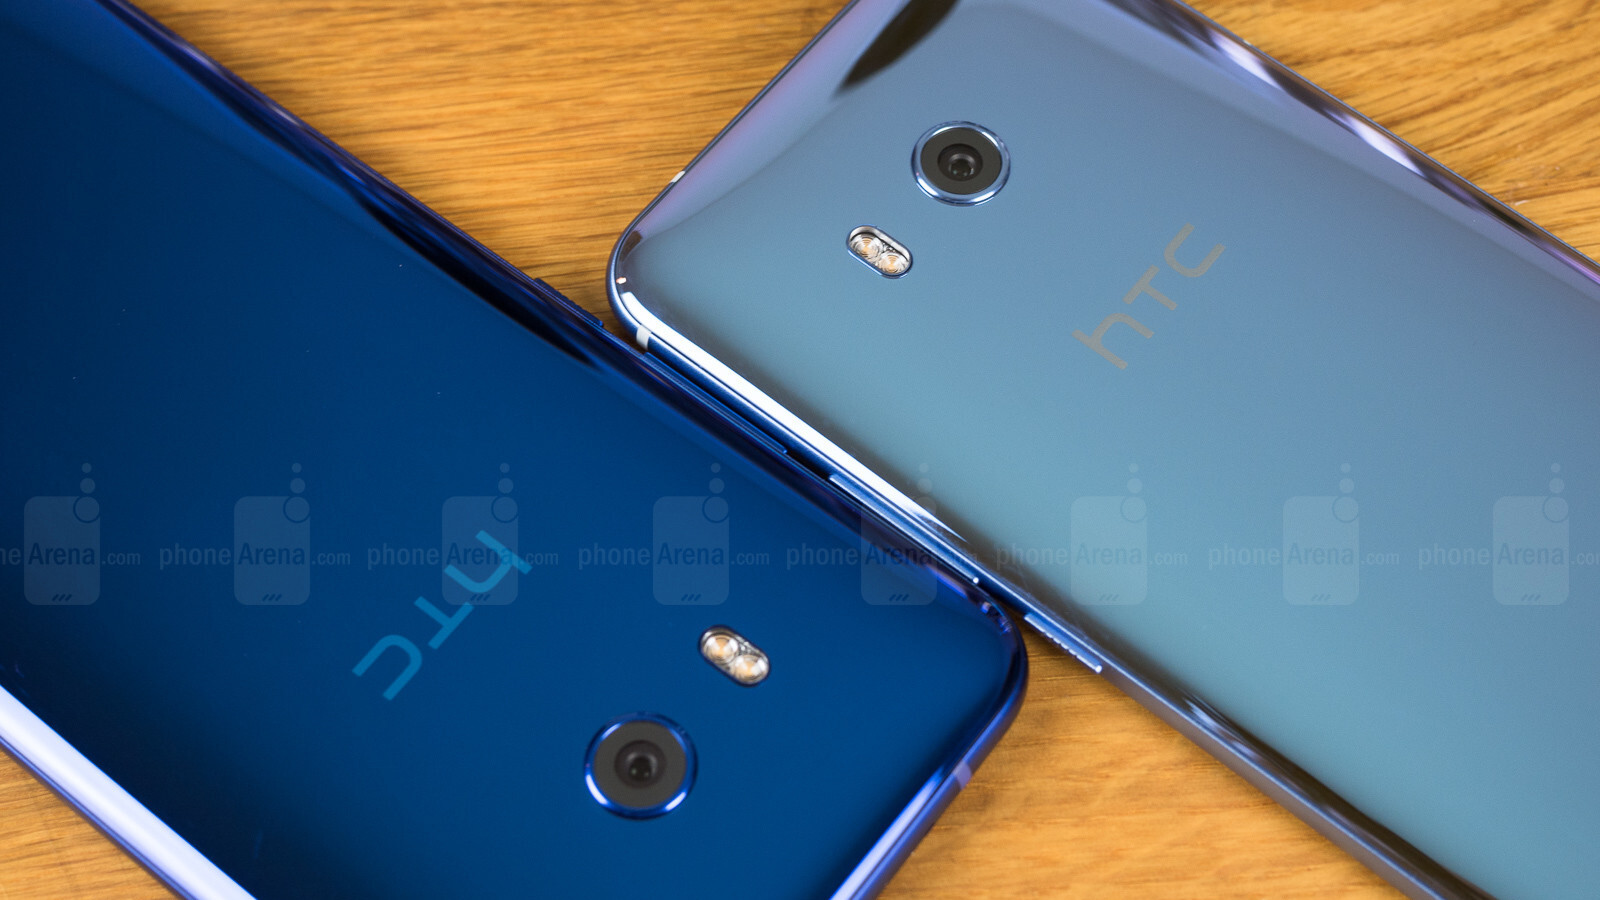 HTC U12 will not be at MWC 2018